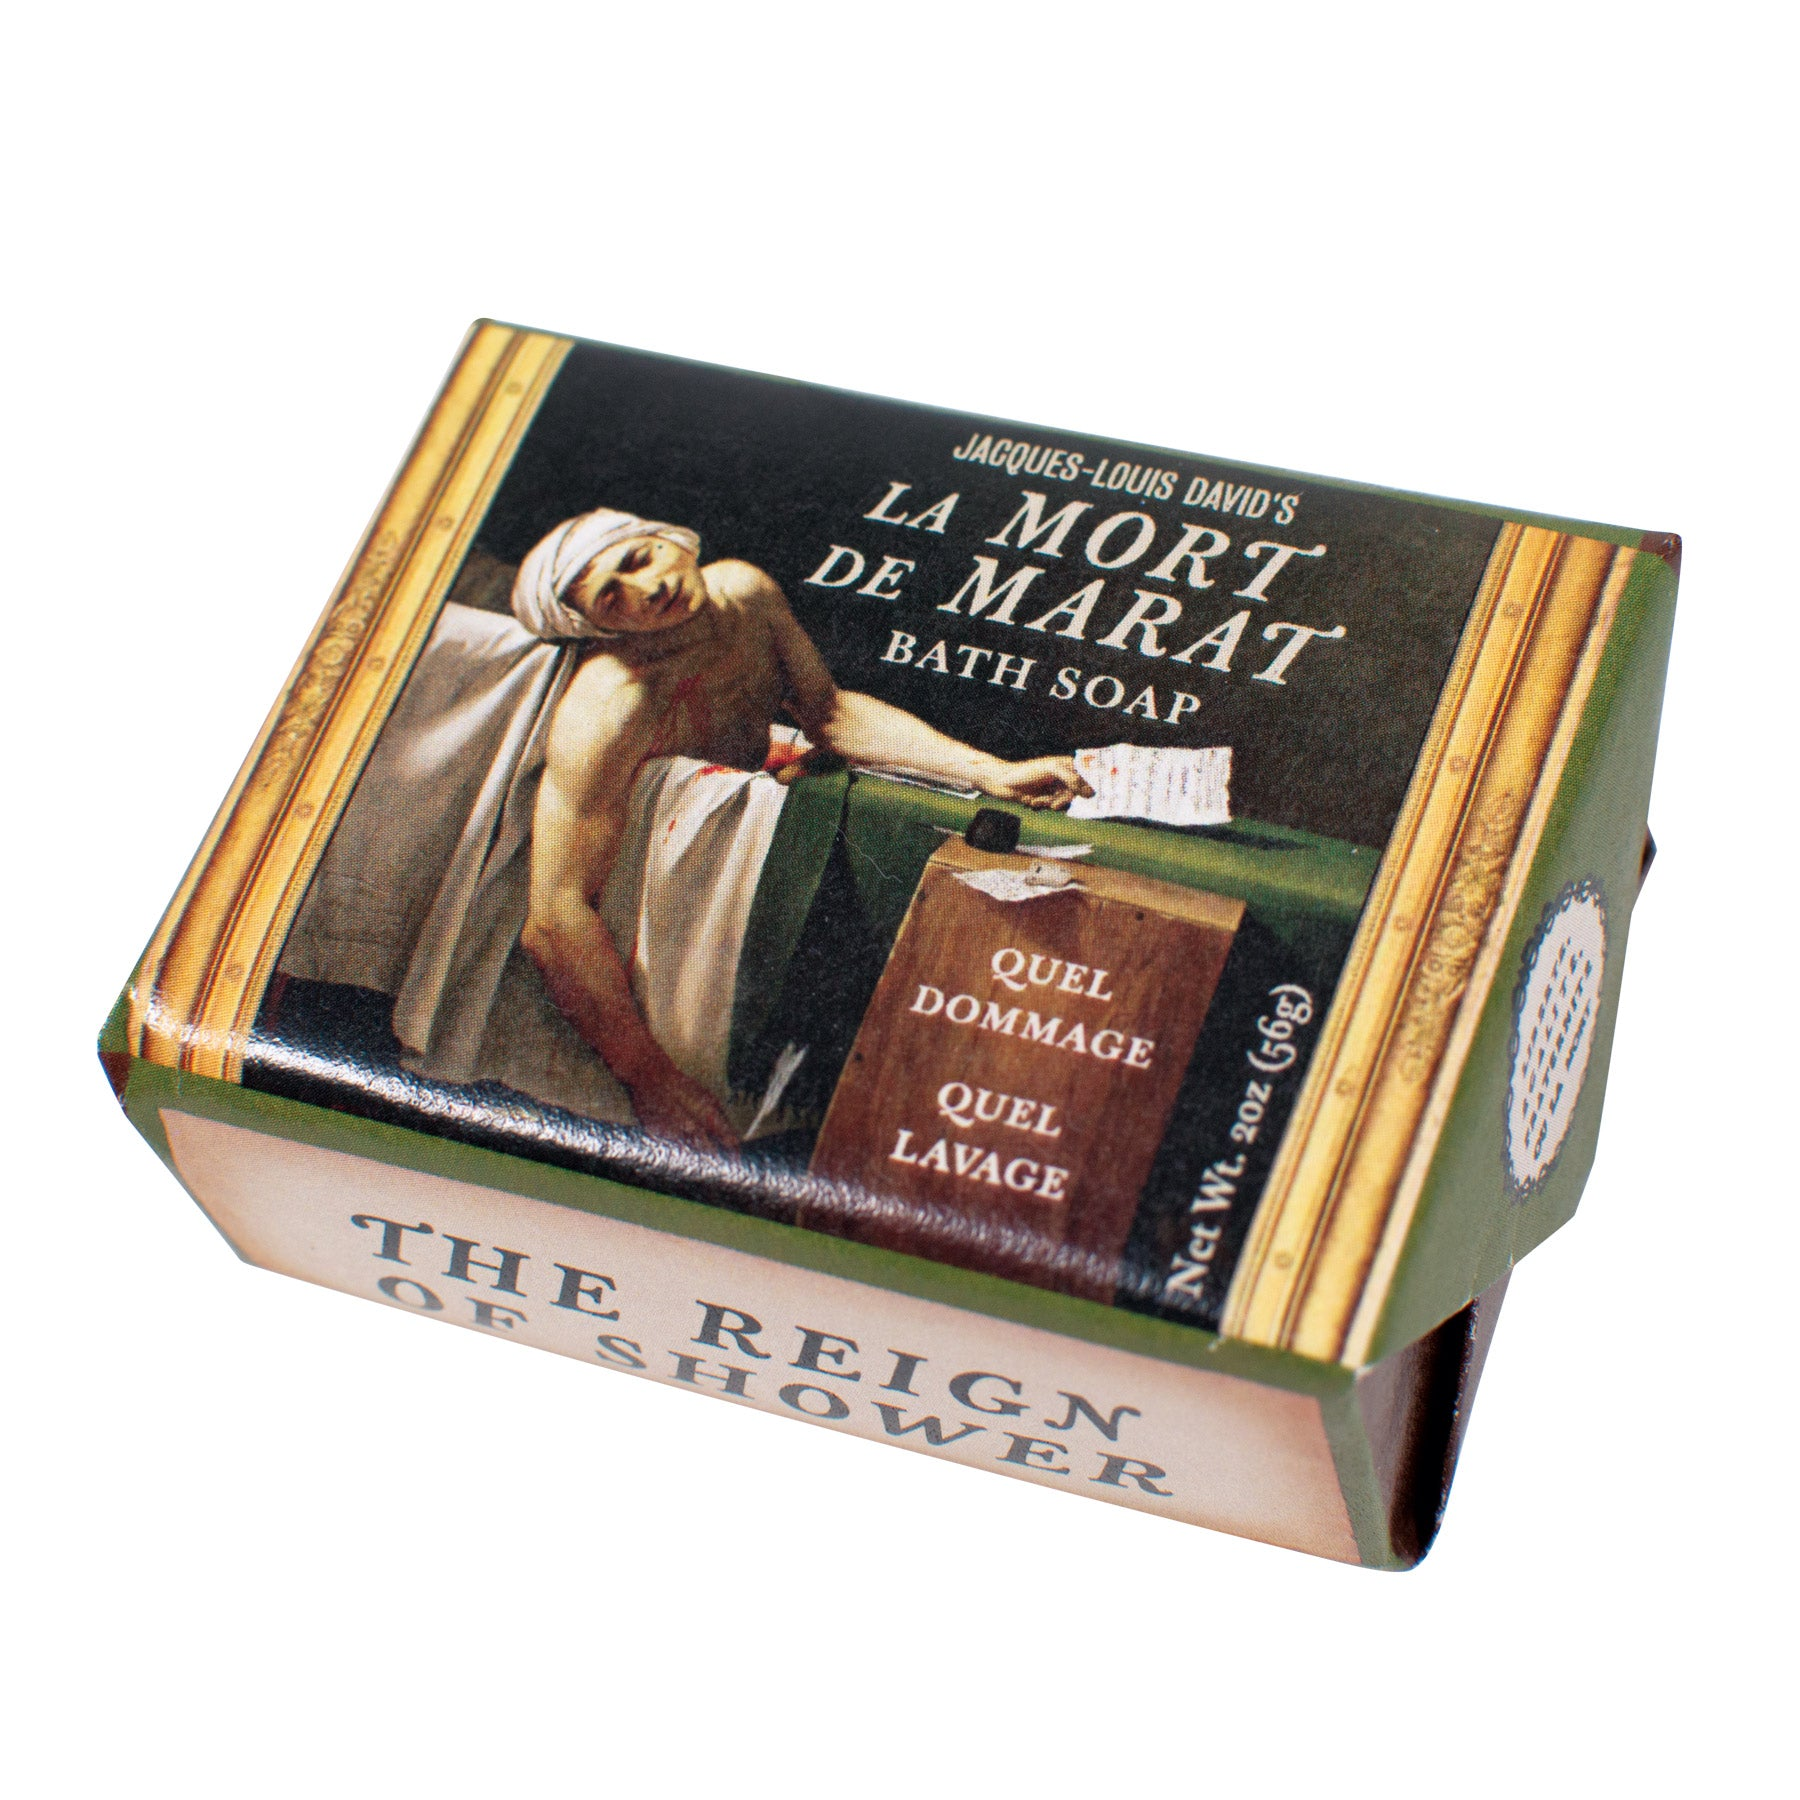 Jacques-Louis David's La Mort de Marat Bath Soap